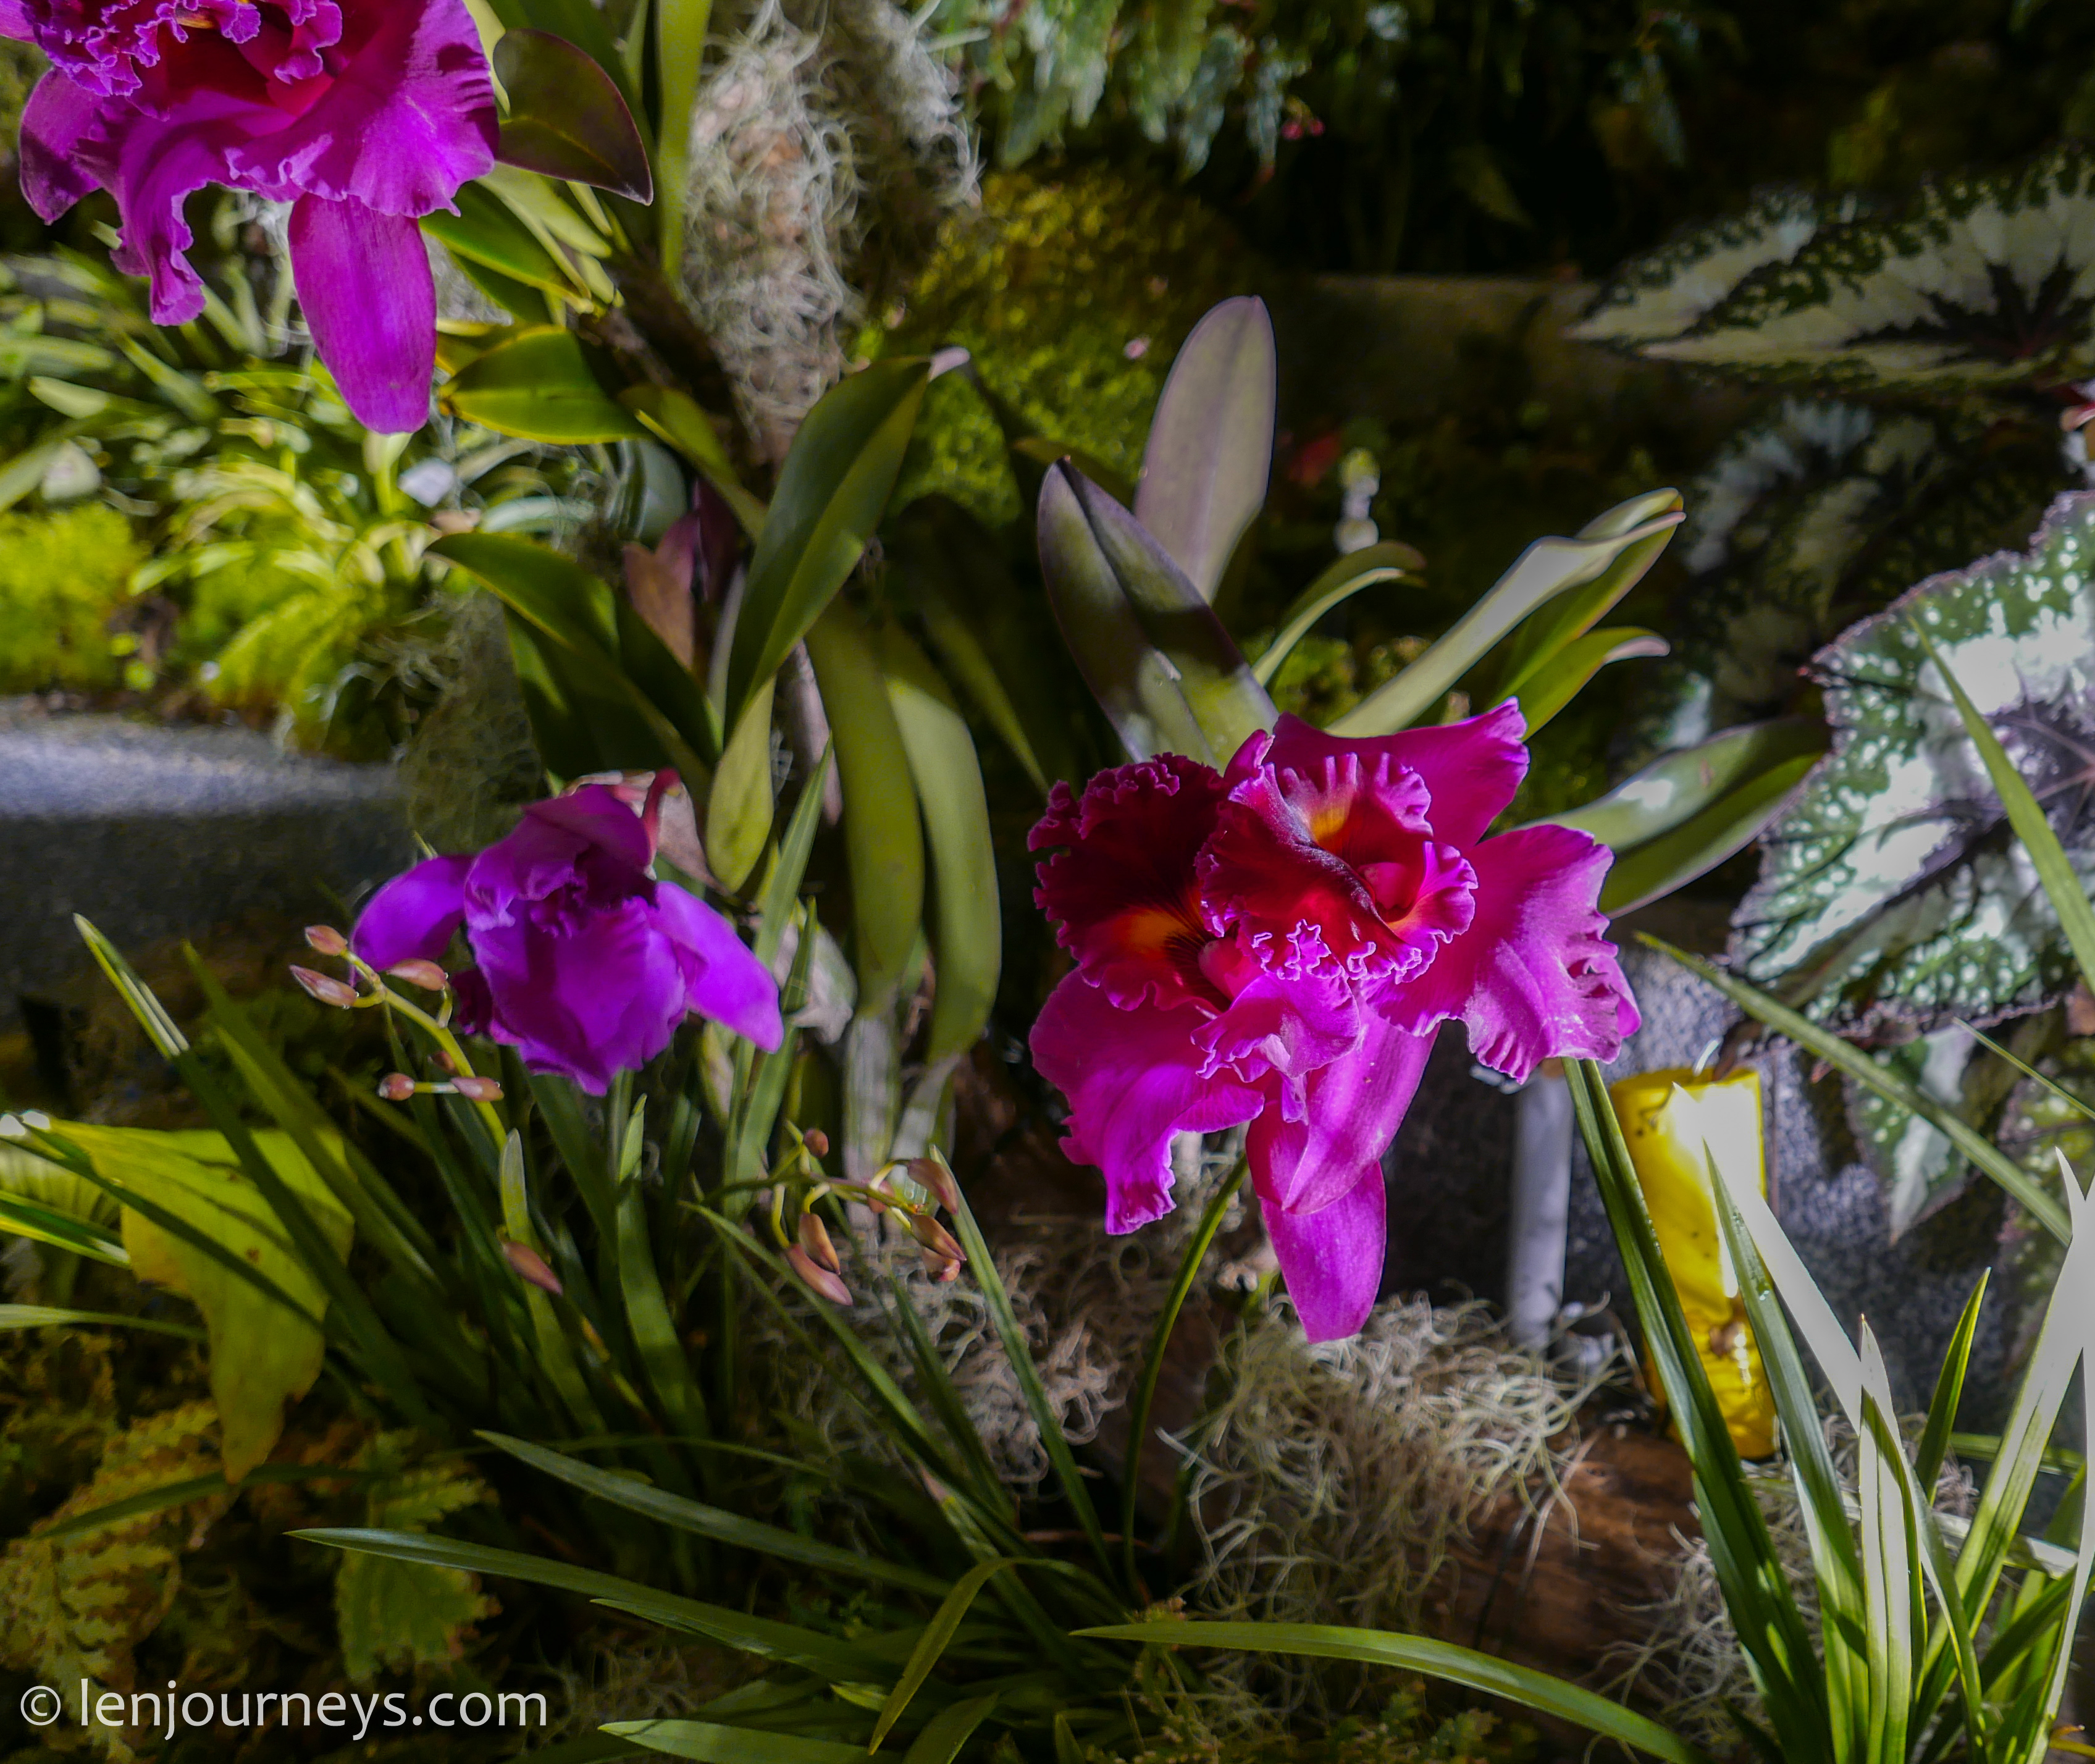 Nocturnal orchard at Floral Fantasy